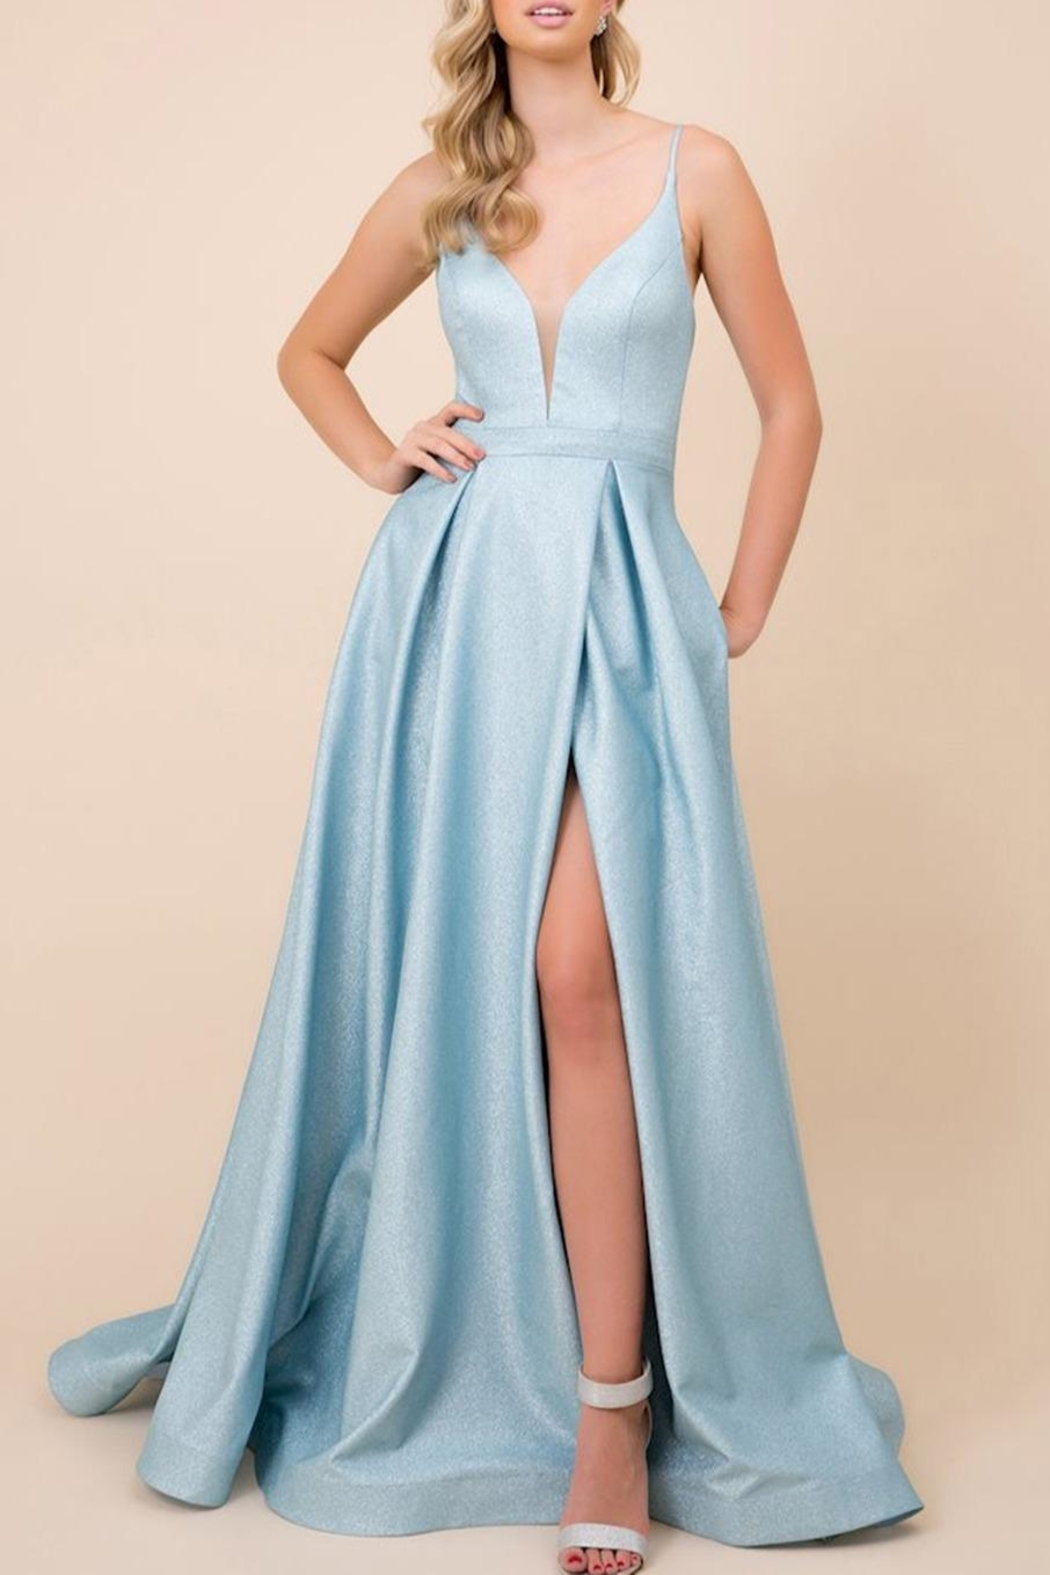 NOX A N A B E L Sparkly Evening Gown - Main Image